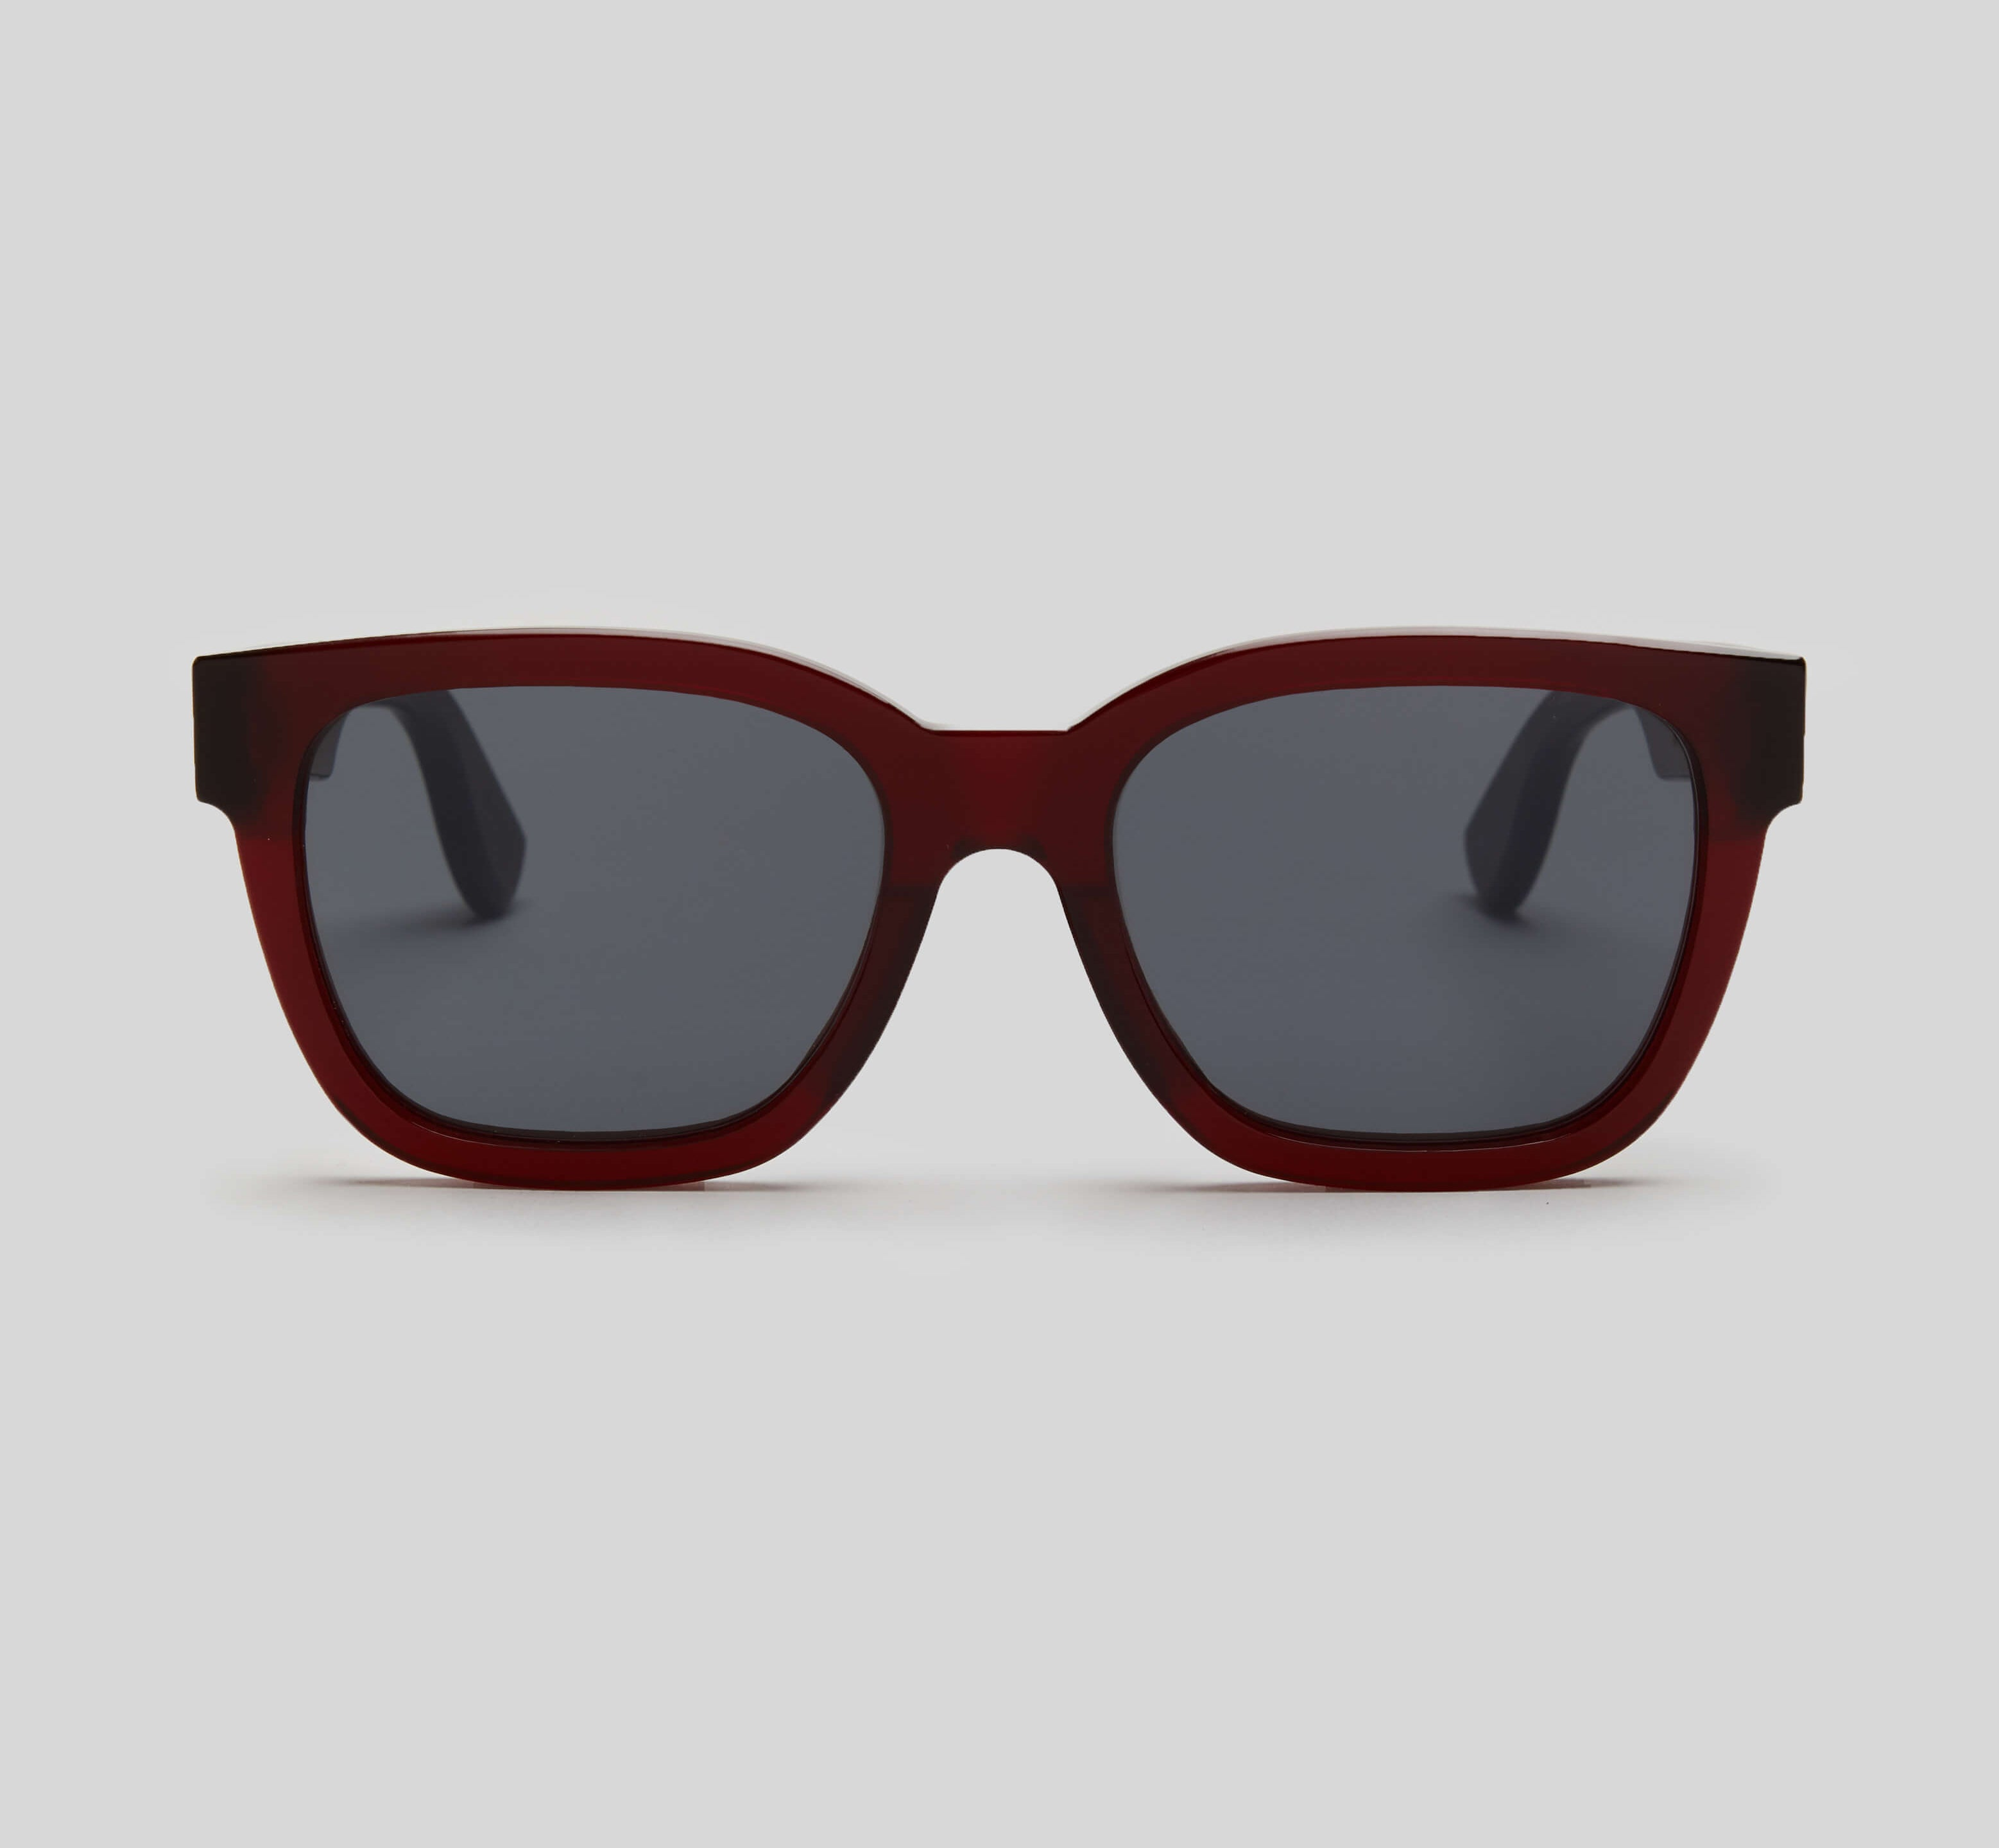 Red square sunglasses eco friendly sustainable fashion made in Japan unisex sunglasses for men sunglasses for women and blue light filter